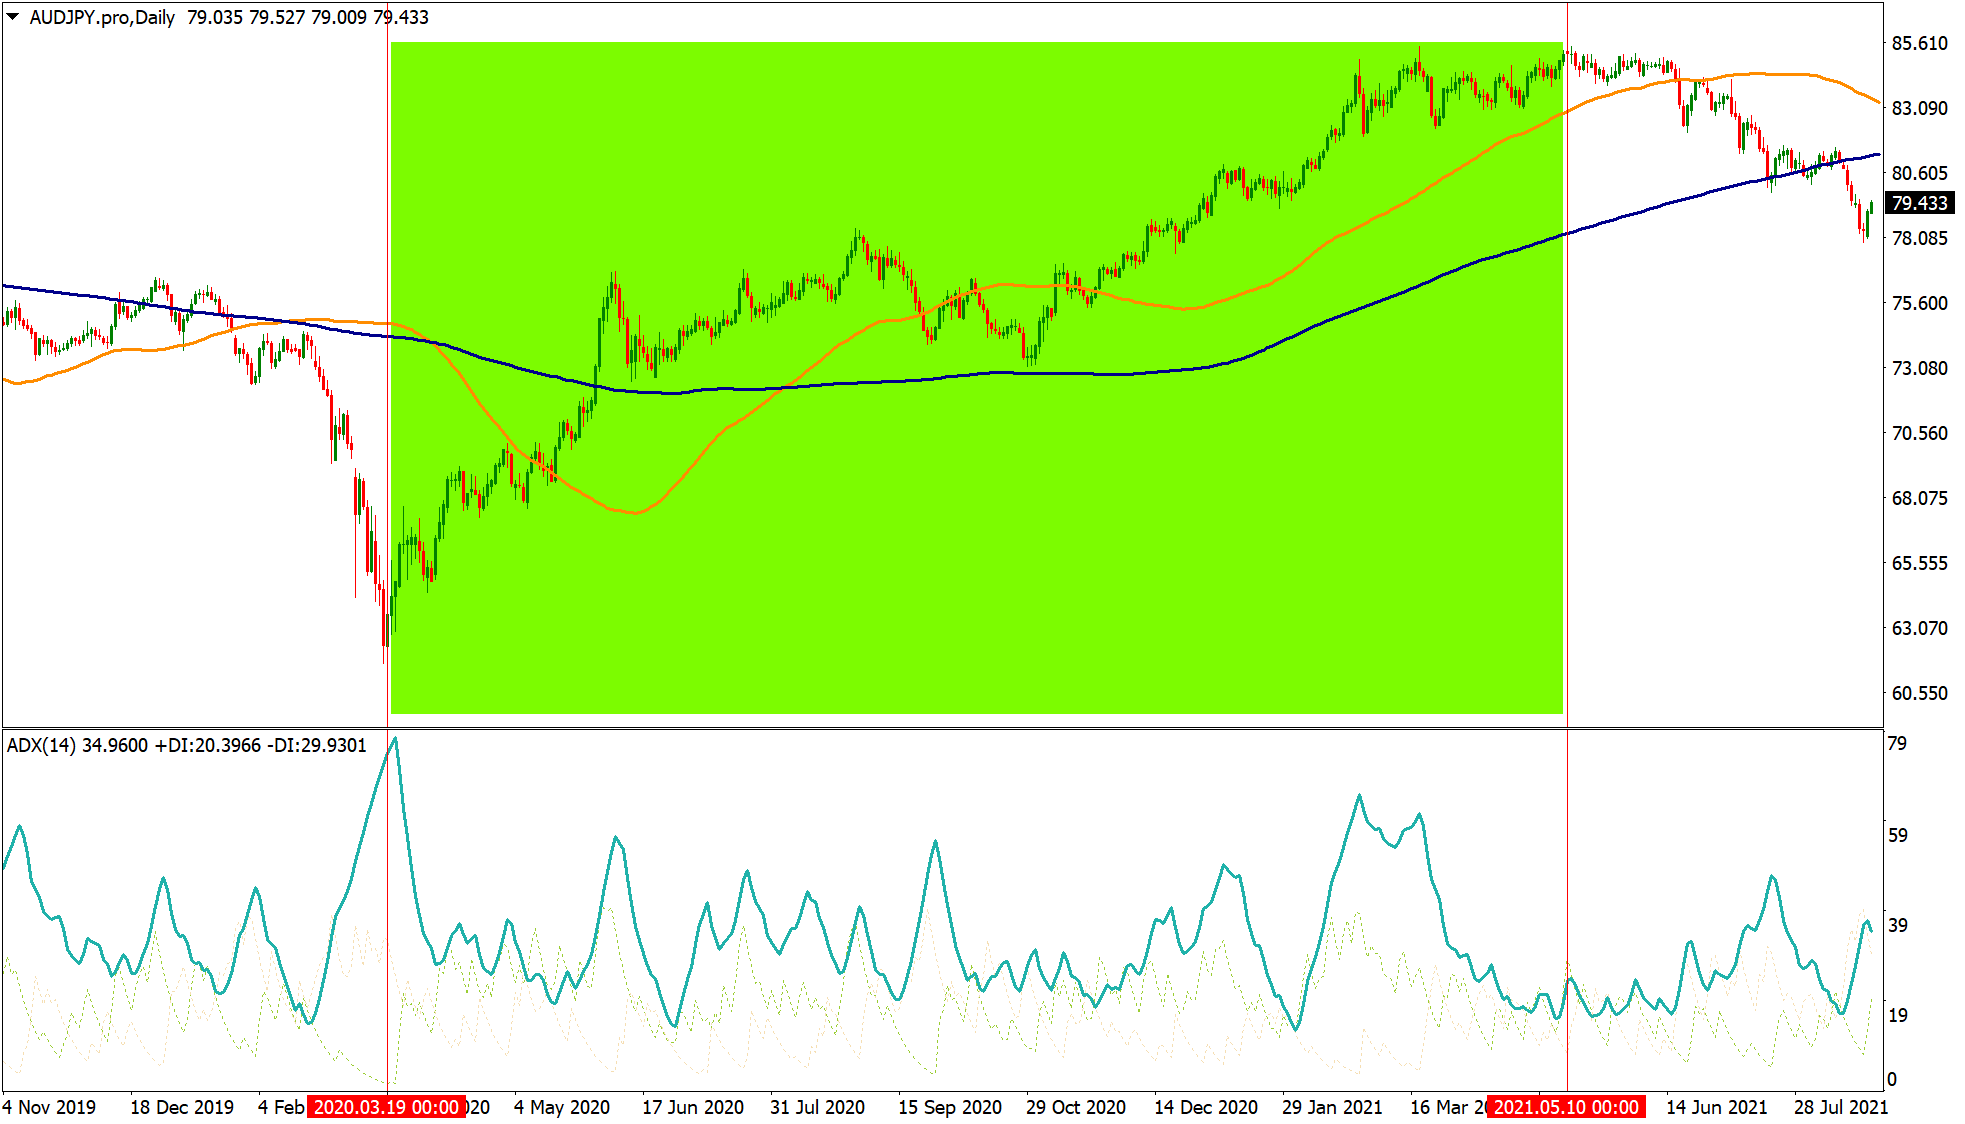 AUDJPY carry trade opportunity on price chart